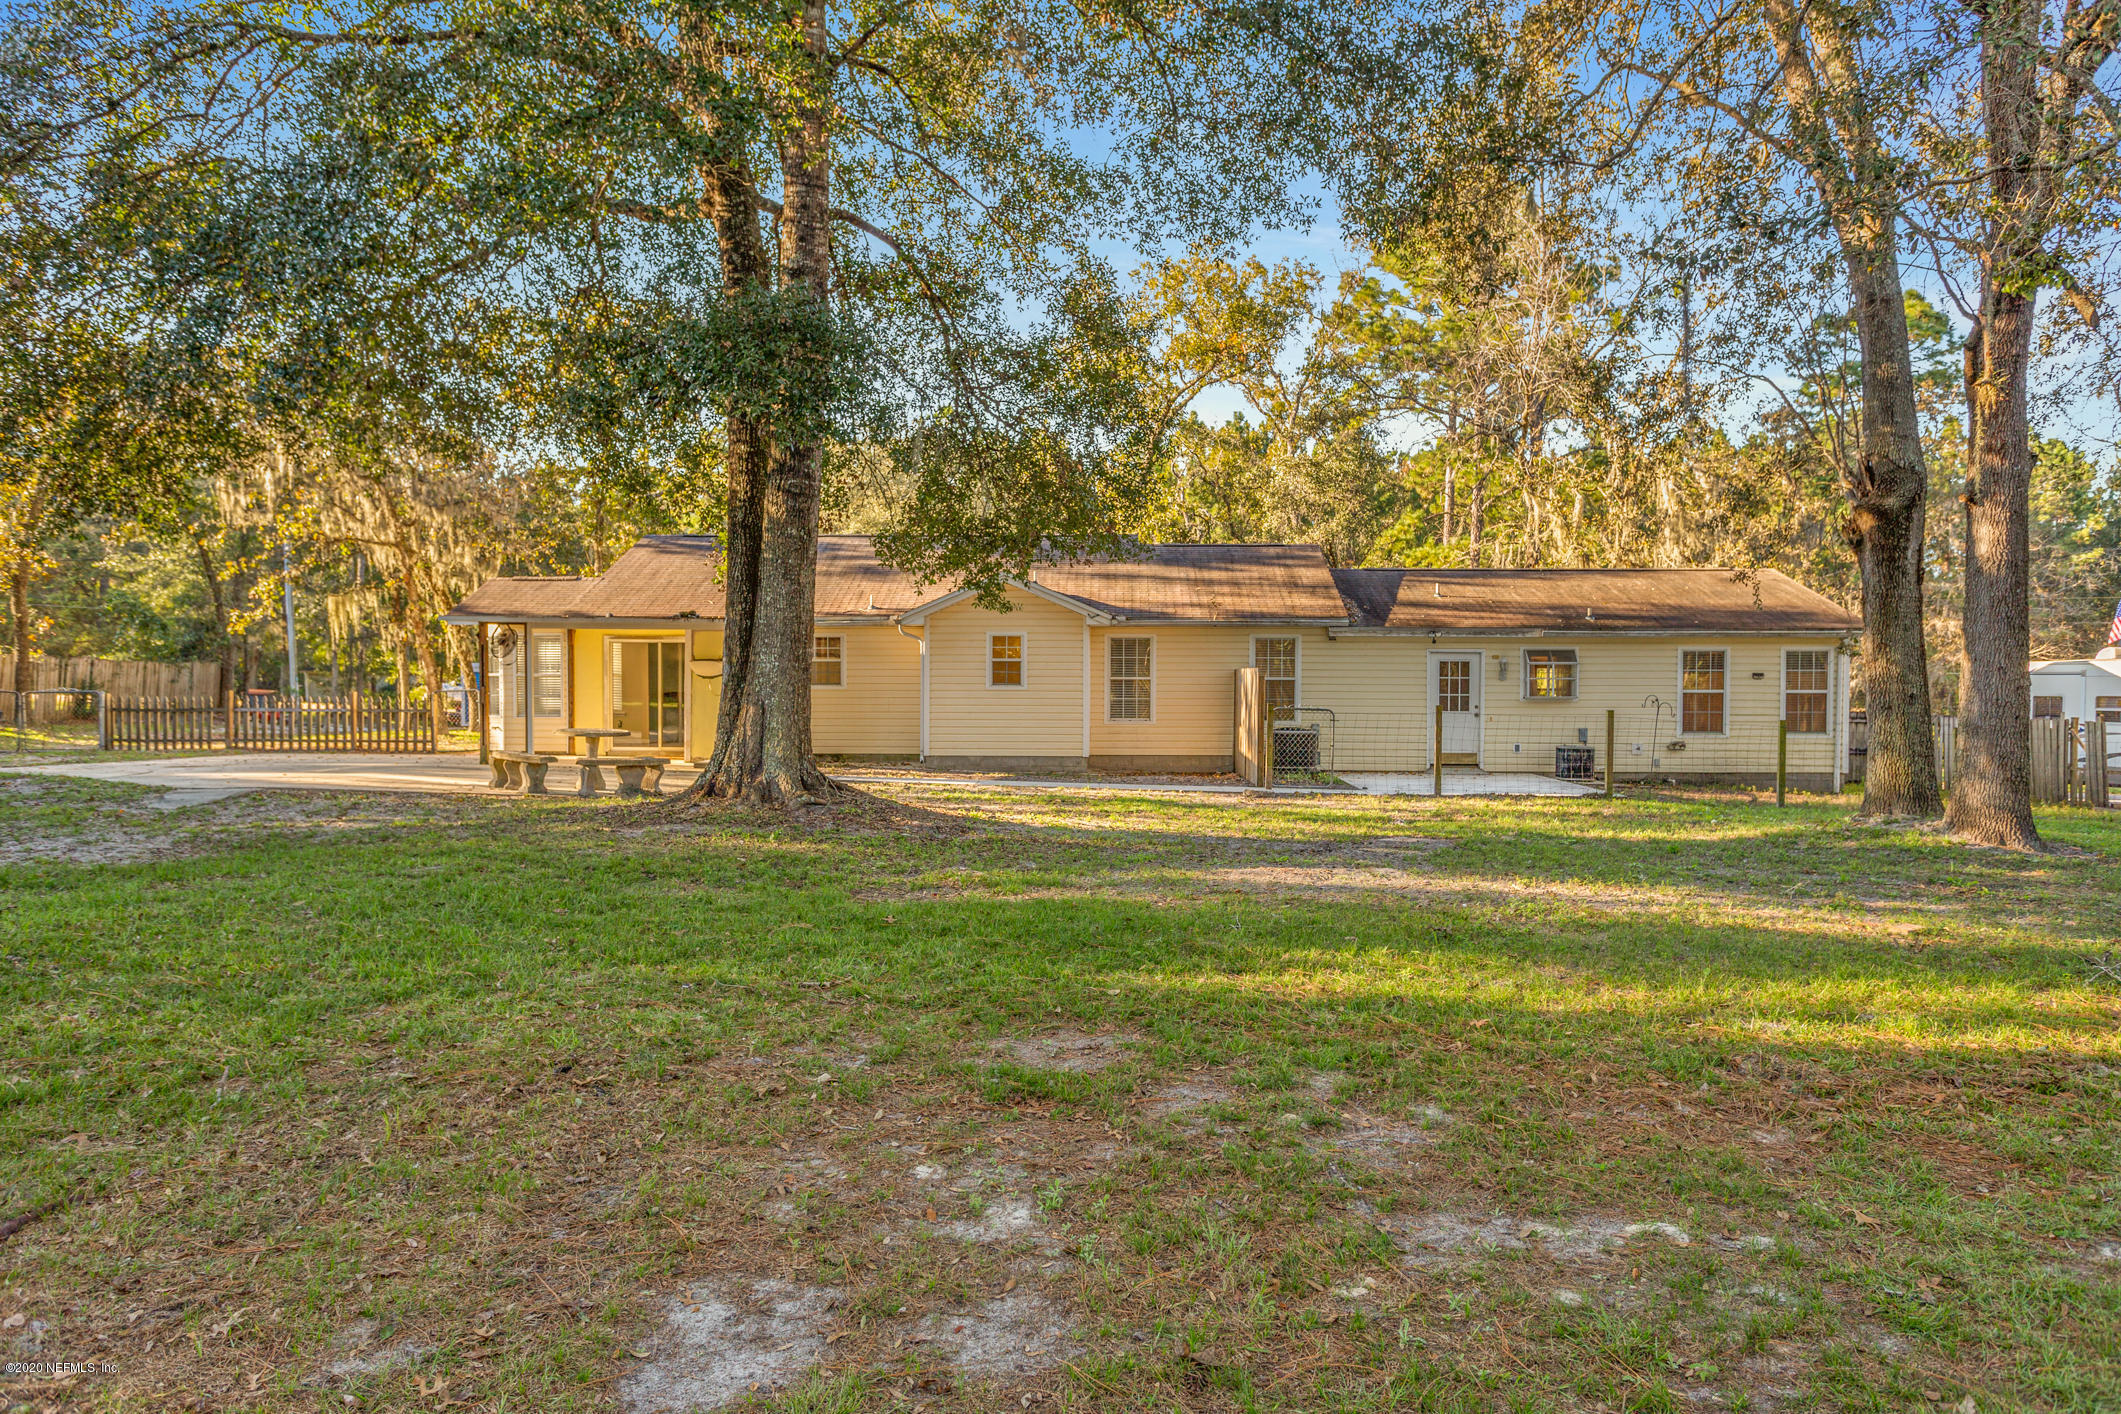 2995 GRAPE, MIDDLEBURG, FLORIDA 32068, 5 Bedrooms Bedrooms, ,3 BathroomsBathrooms,Residential,For sale,GRAPE,1083061